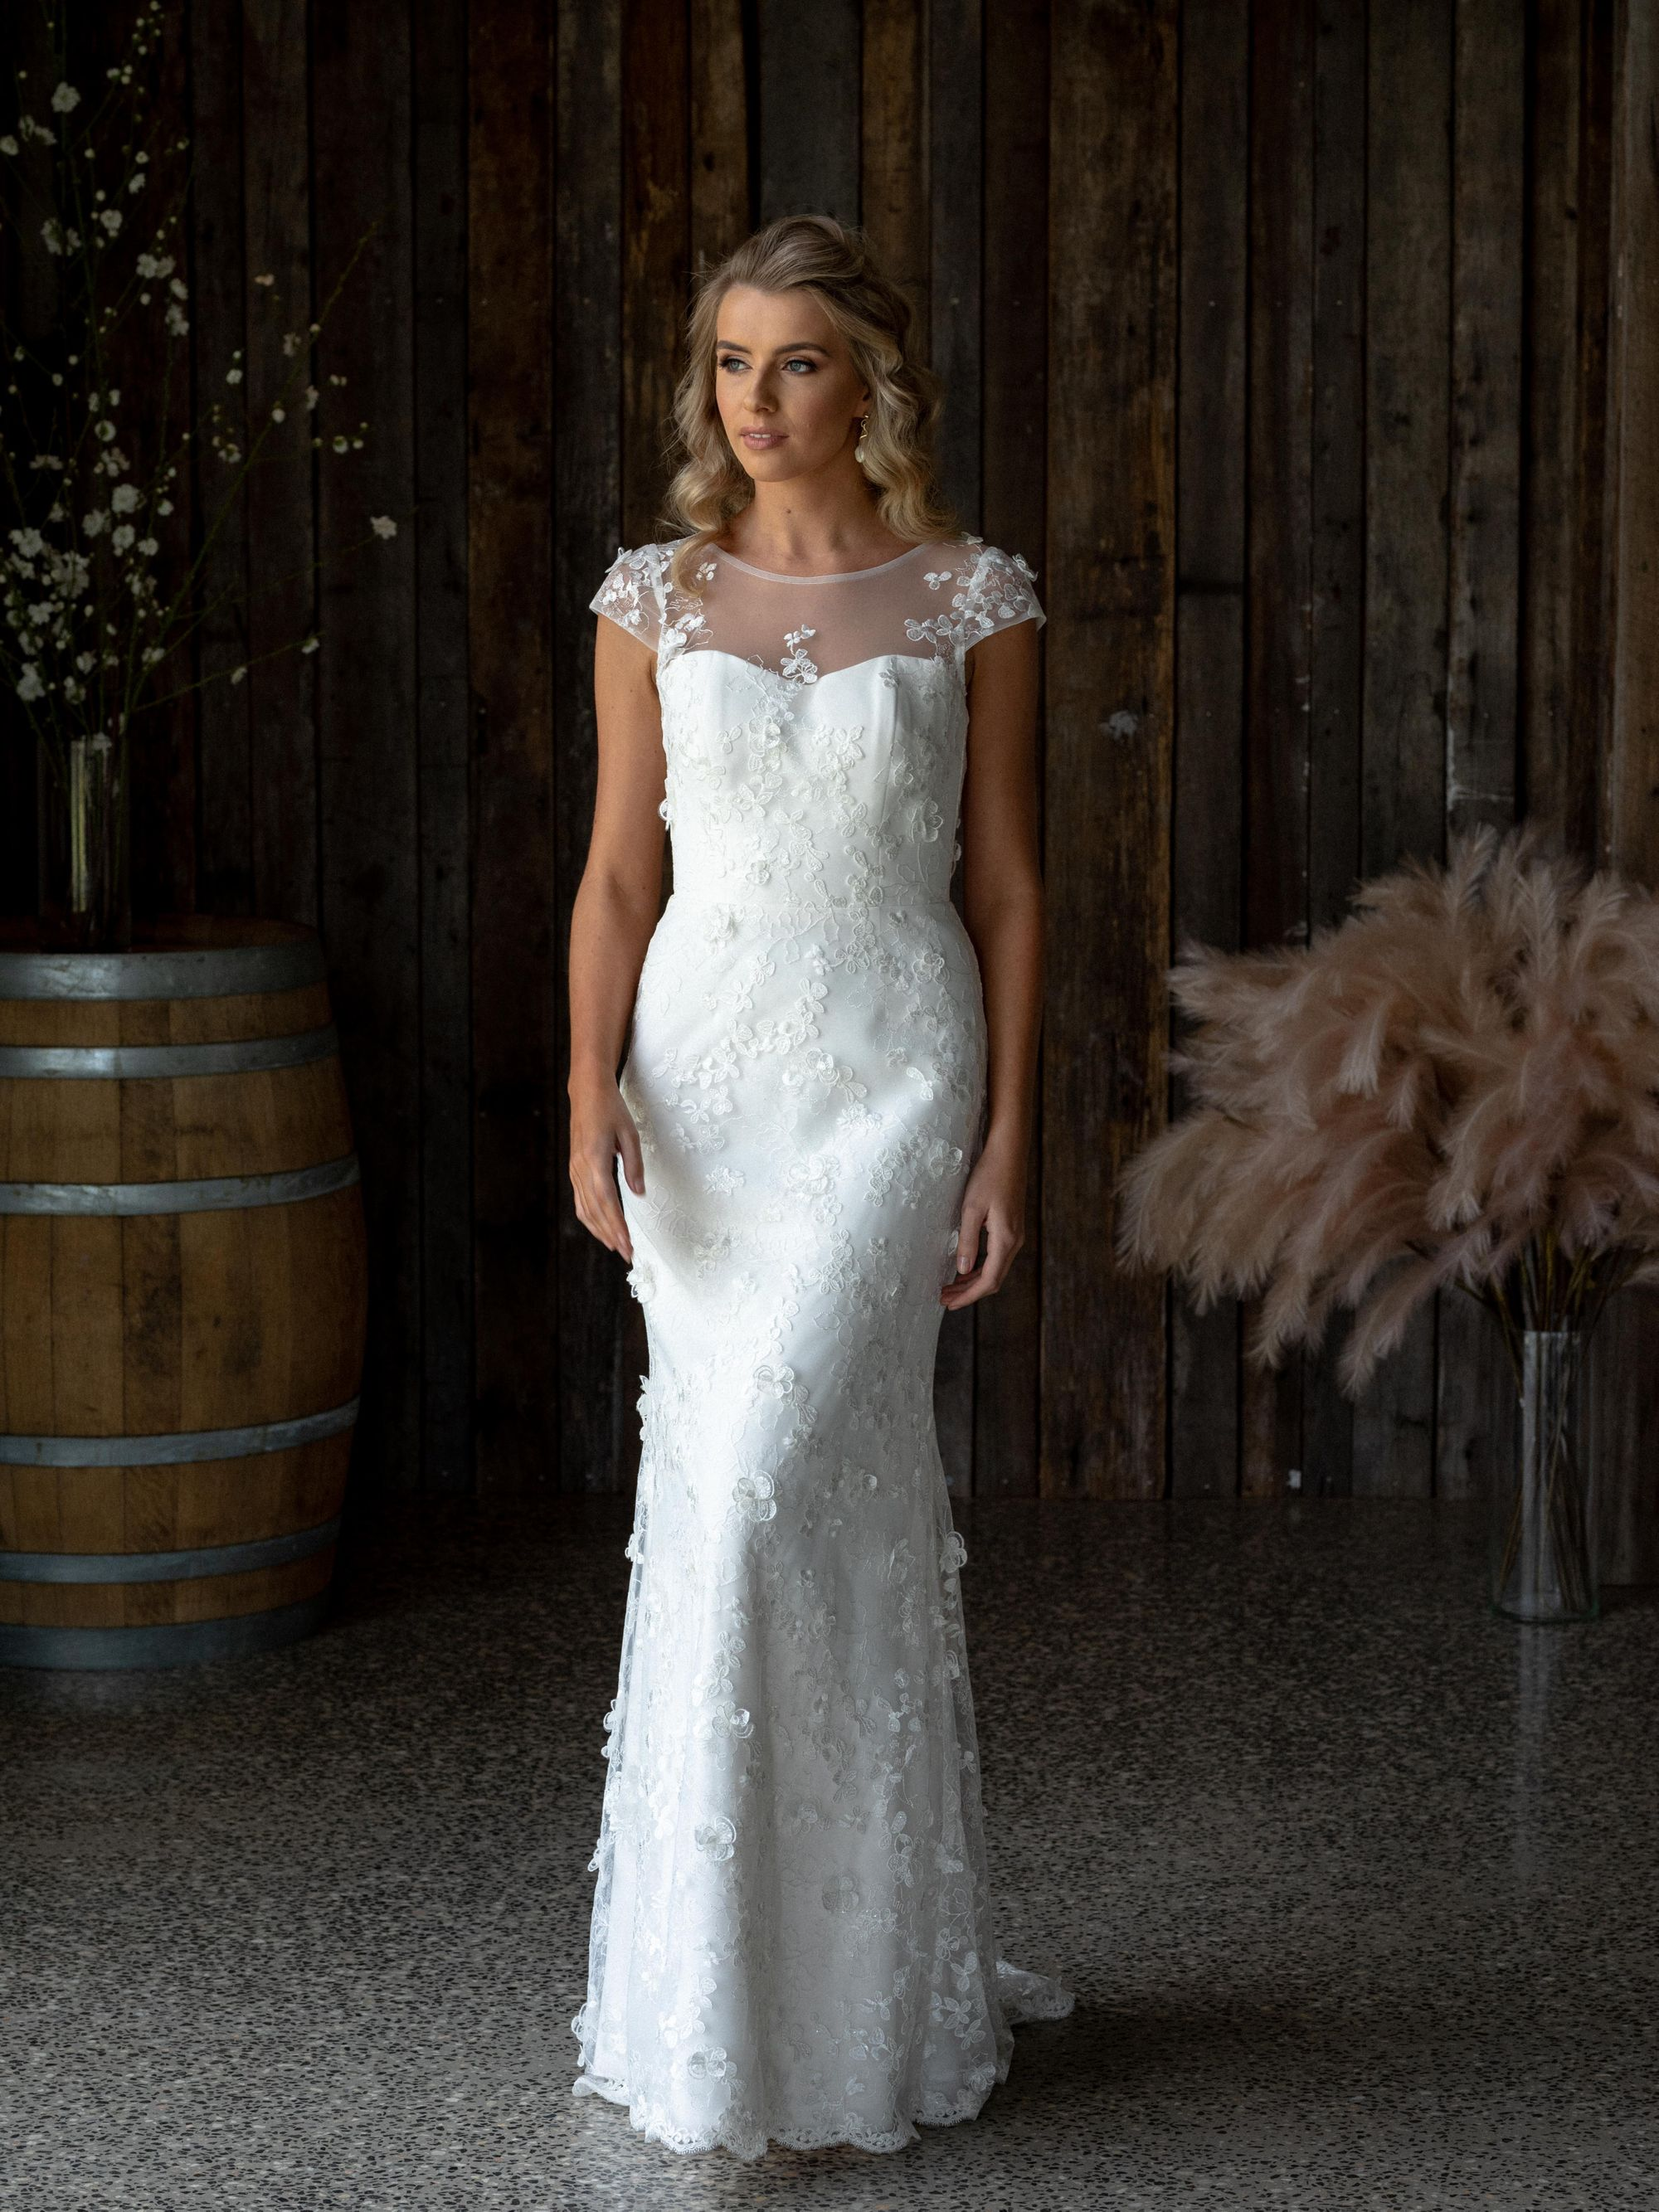 Our Angelina Bertossi Brides Gown Created In Delicate Italian